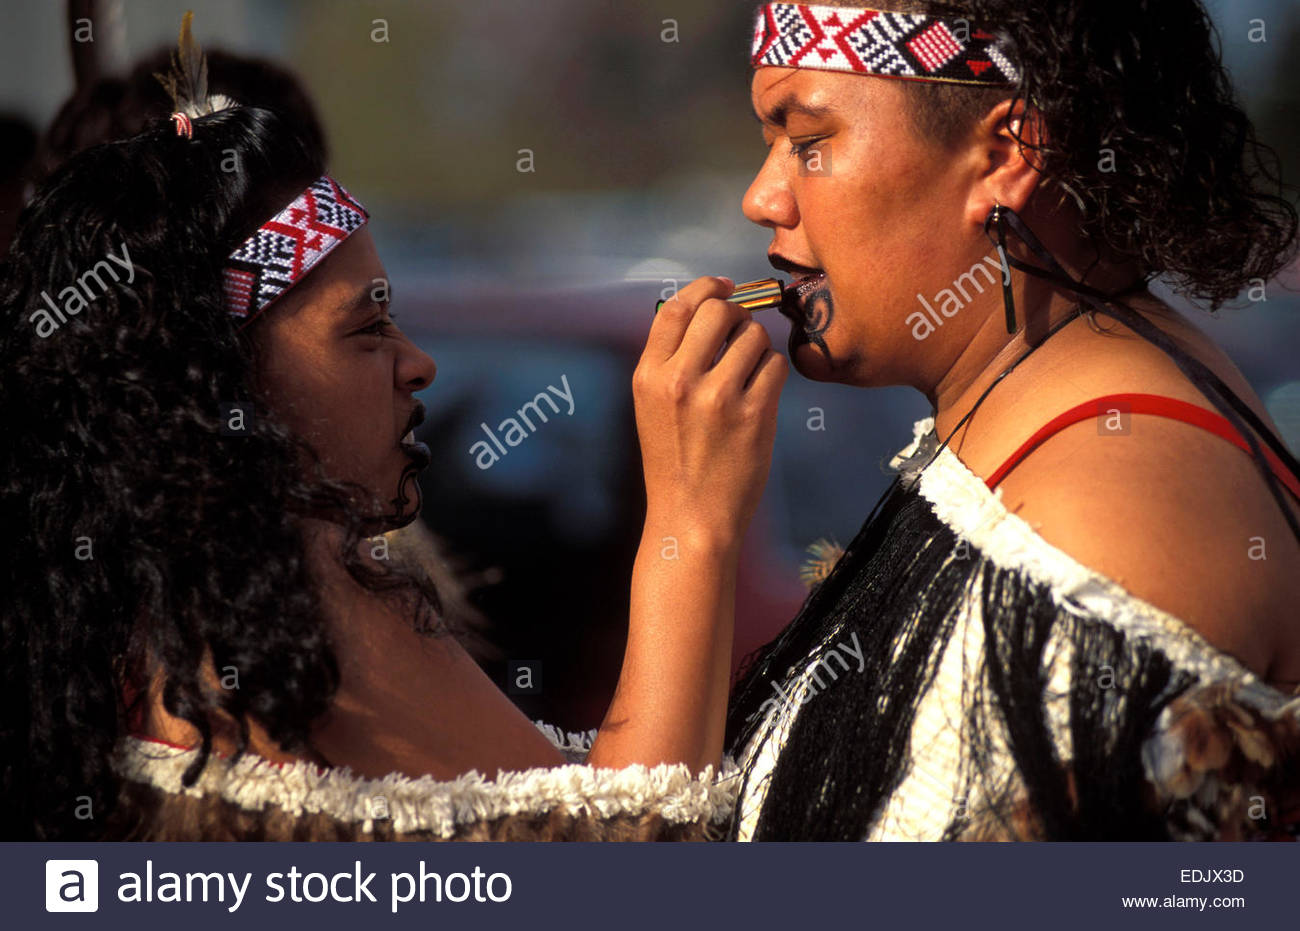 Maori woman making up, North Island, New Zealand - Stock Image